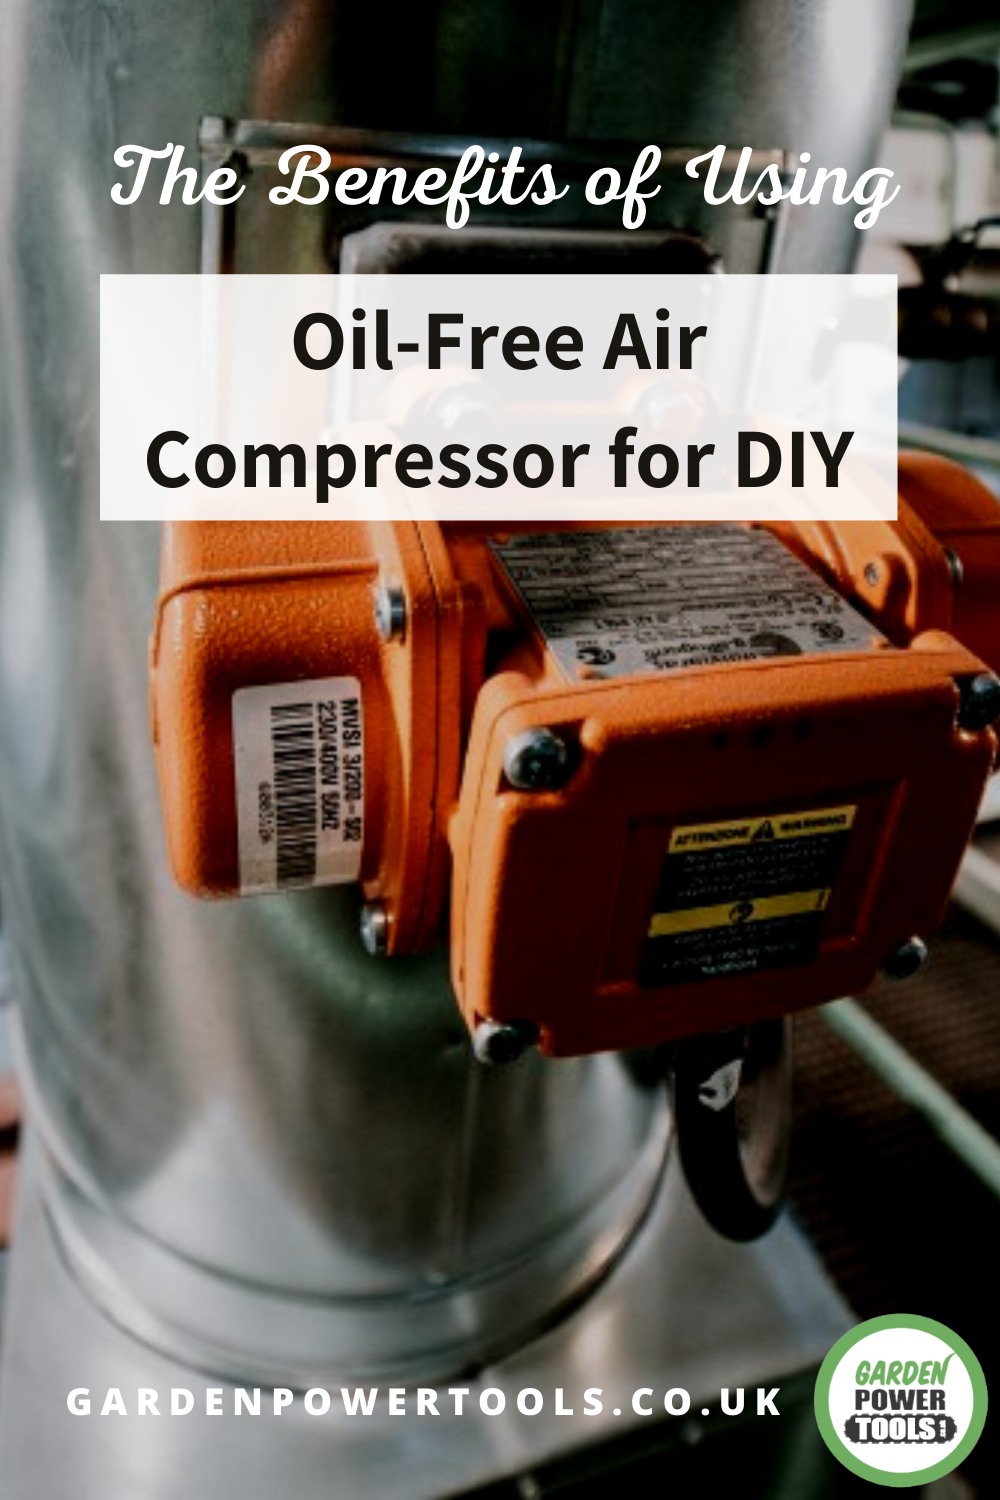 The Benefits of Using an OilFree Air Compressor for DIY